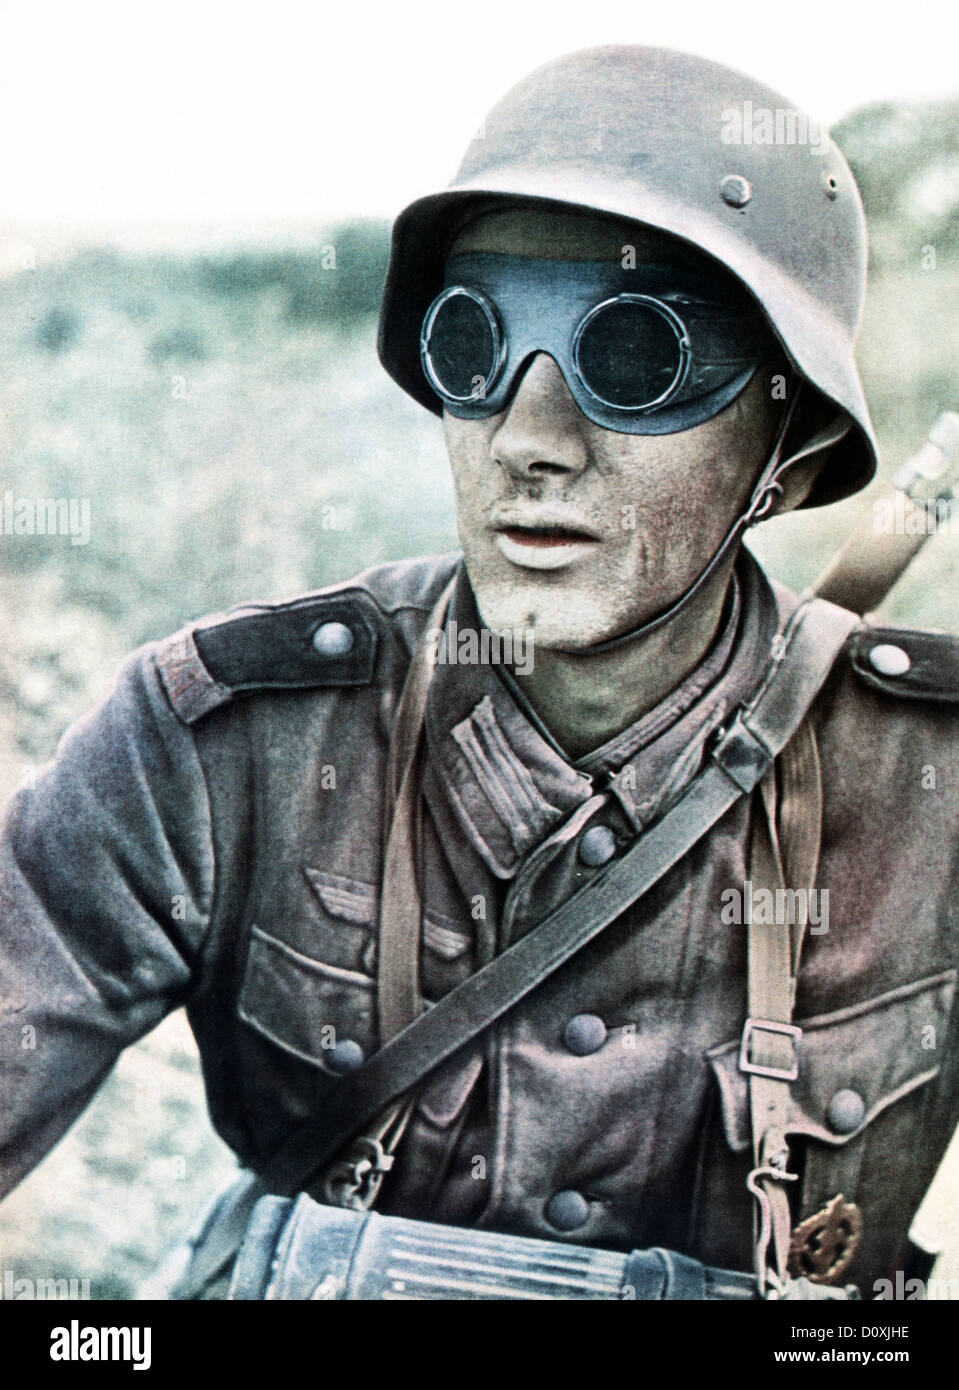 Motorcycle, Dispatch Rider, soldier protective, glasses ...